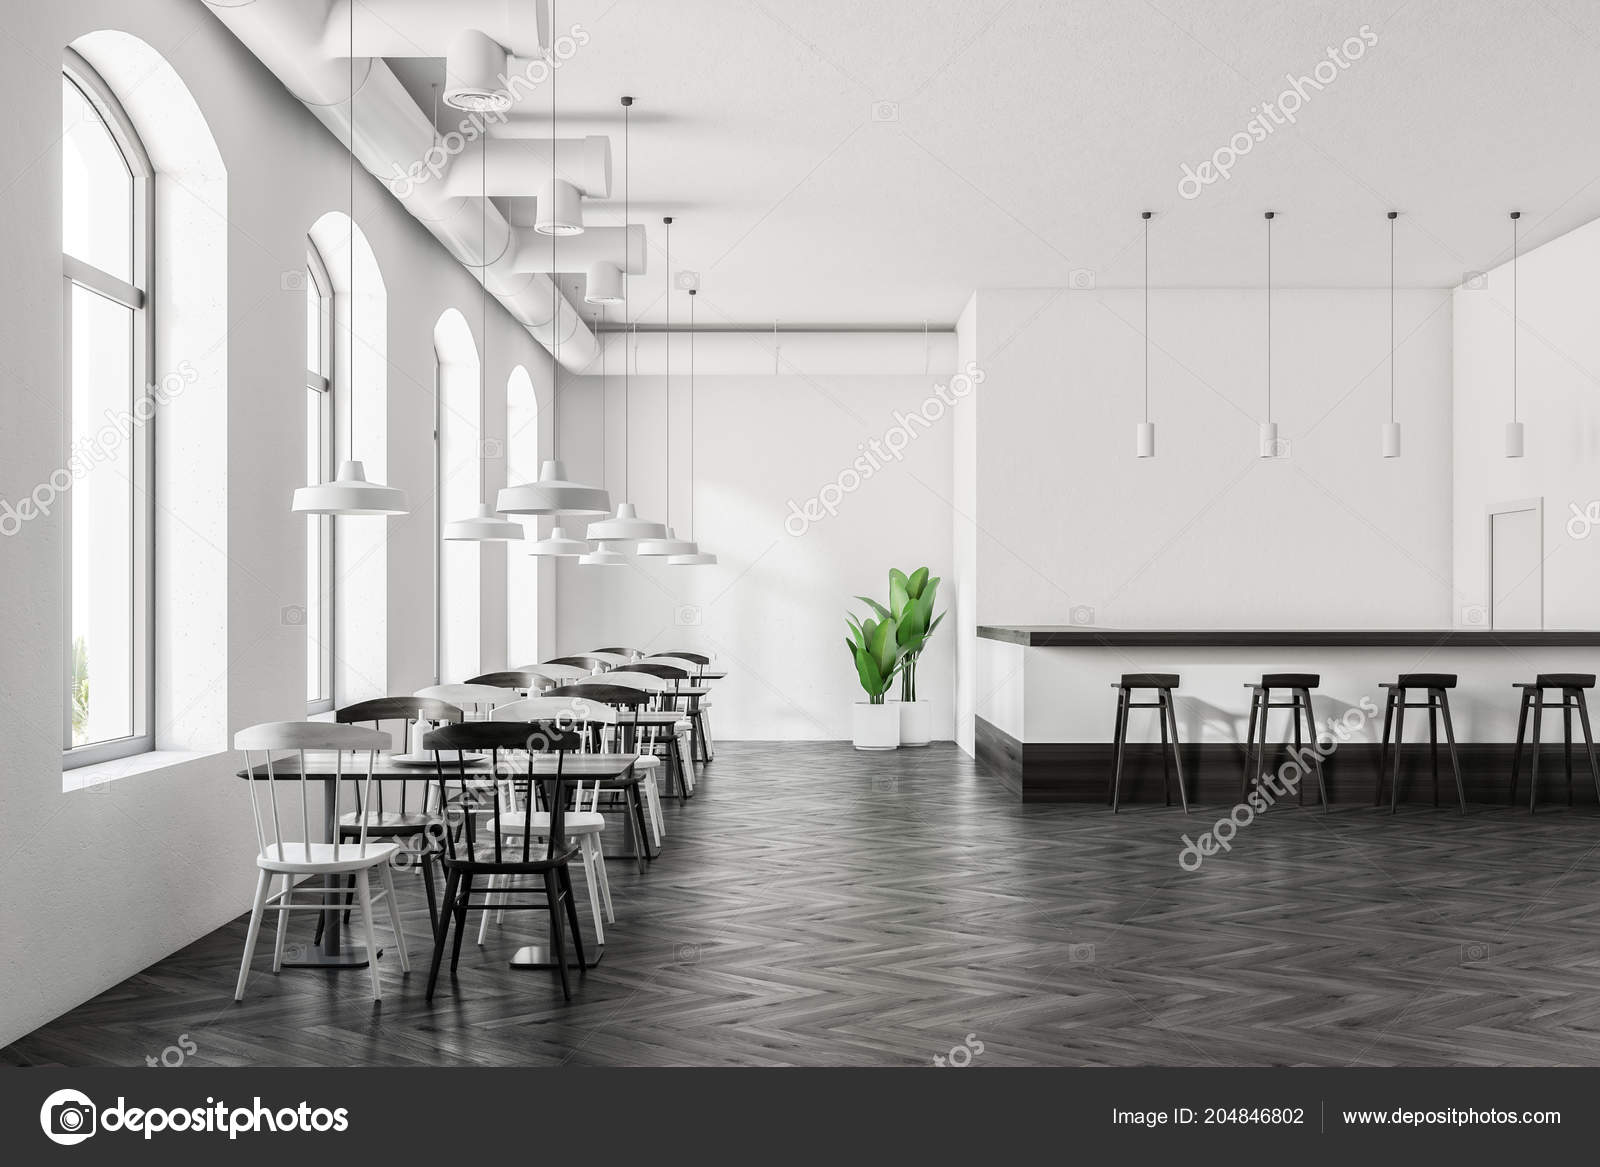 Arched Windows Cafe Interior Dark Wood Floor White Walls White